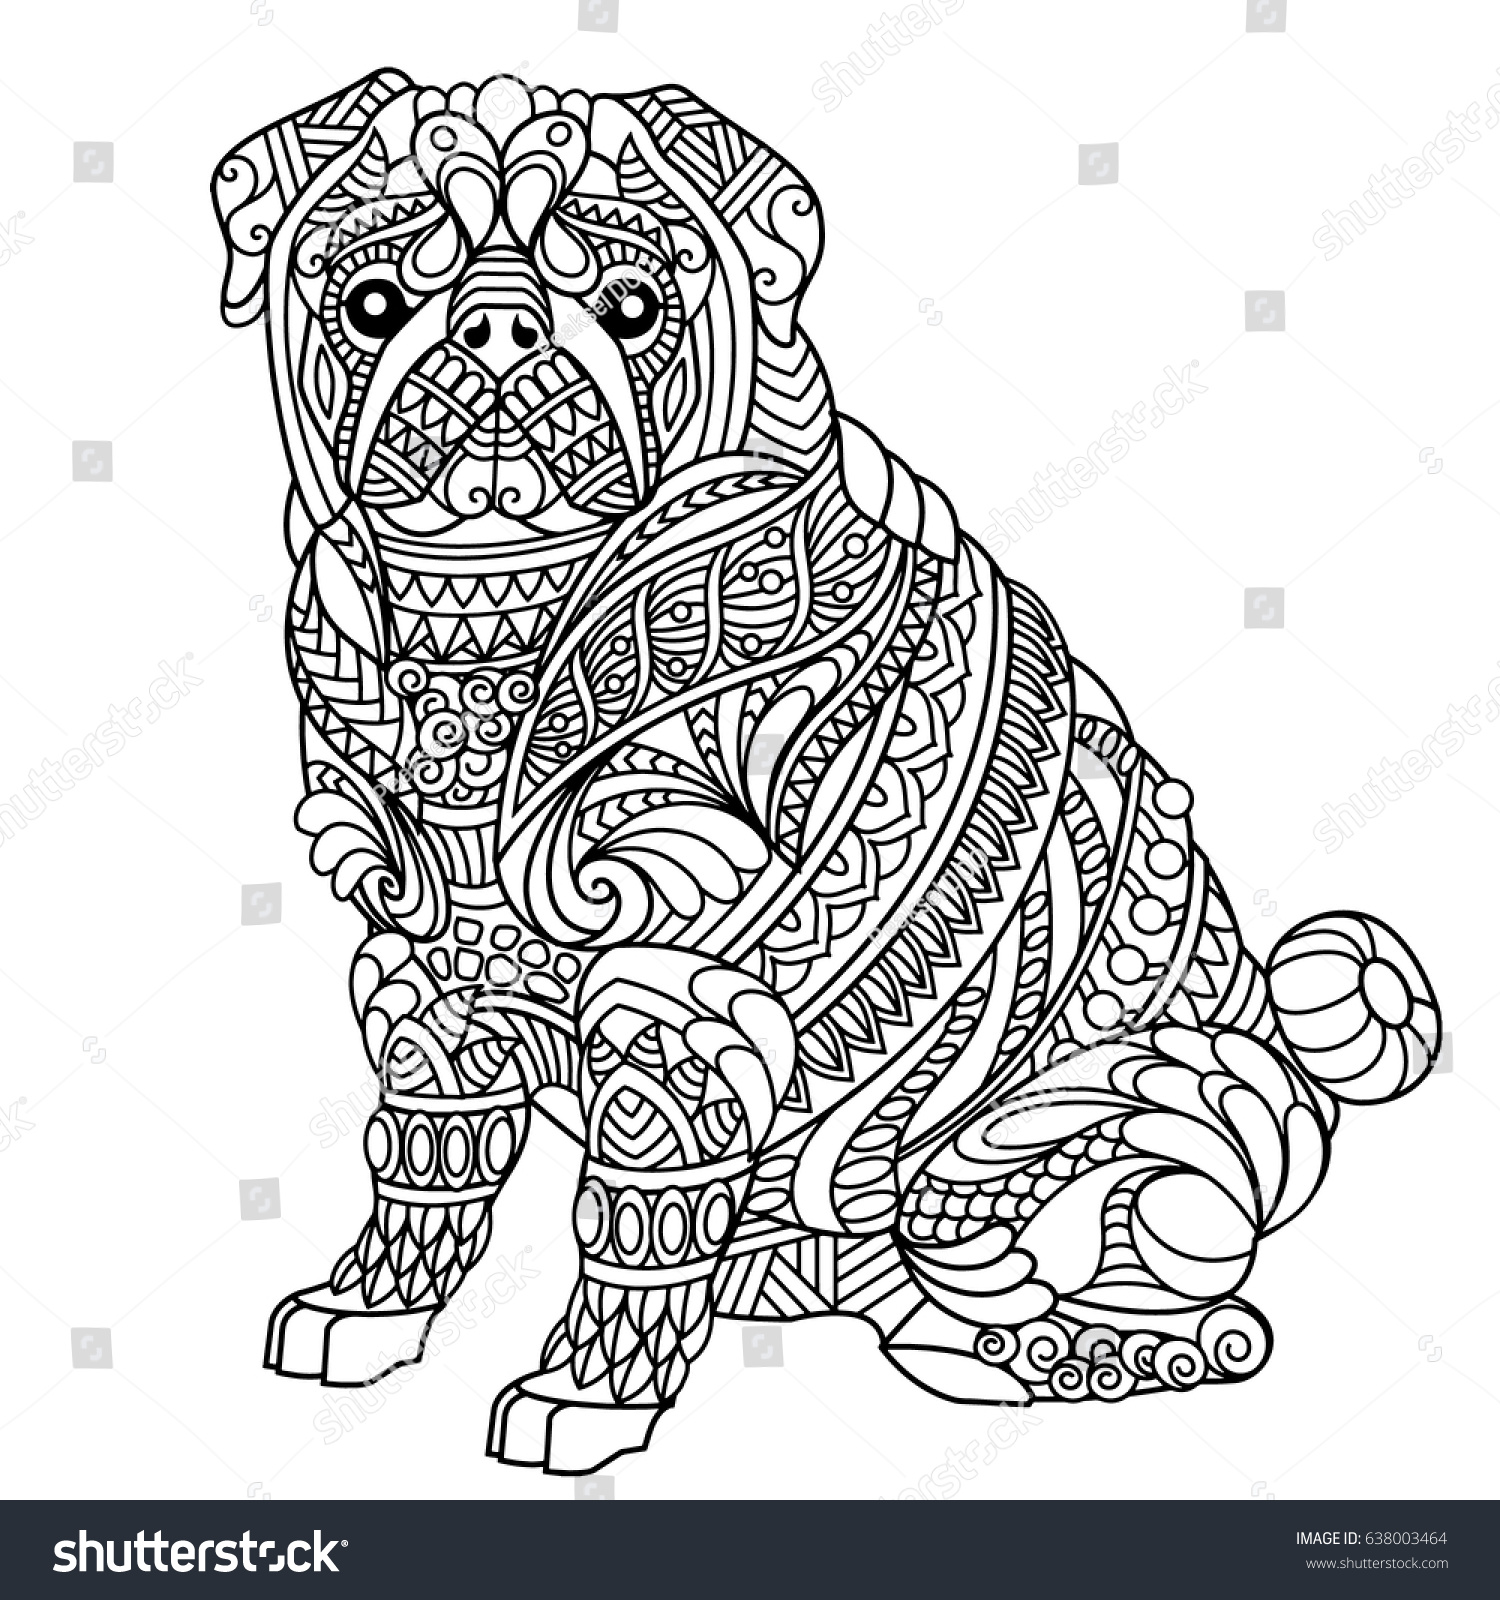 Pug Coloring Book Adults Stock Vector HD (Royalty Free) 638003464 ...